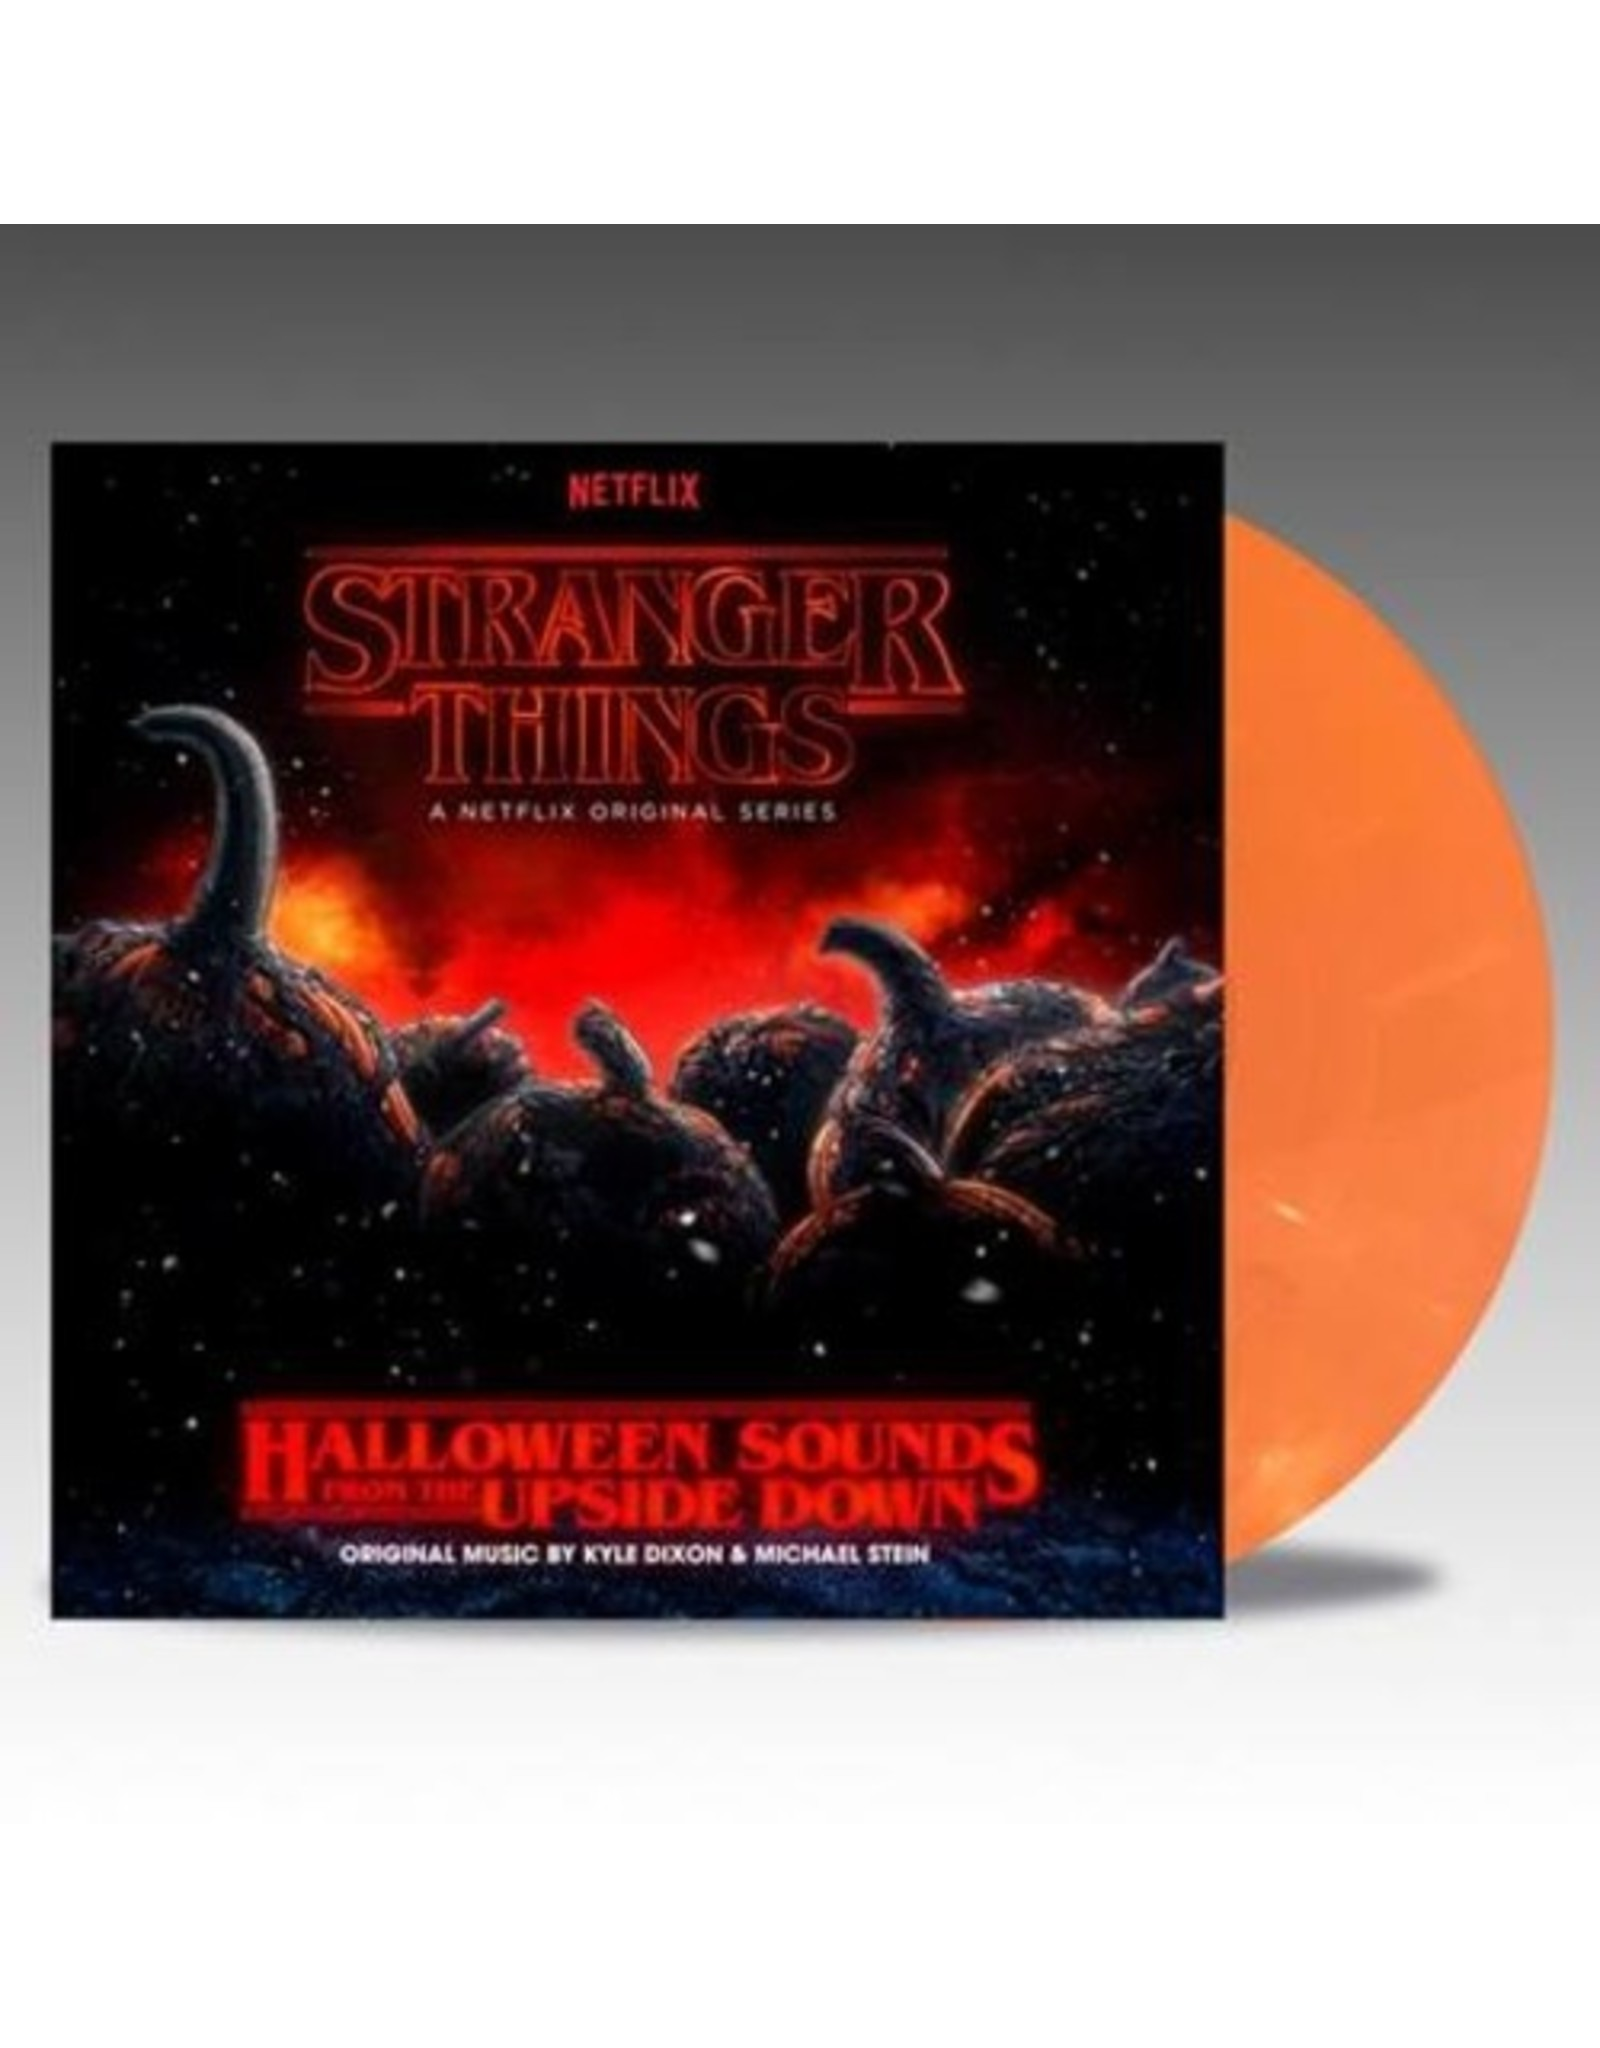 New Vinyl Kyle Dixon & Michael Stein - Stranger Things: Halloween Sounds From The Upside Down (Colored) LP